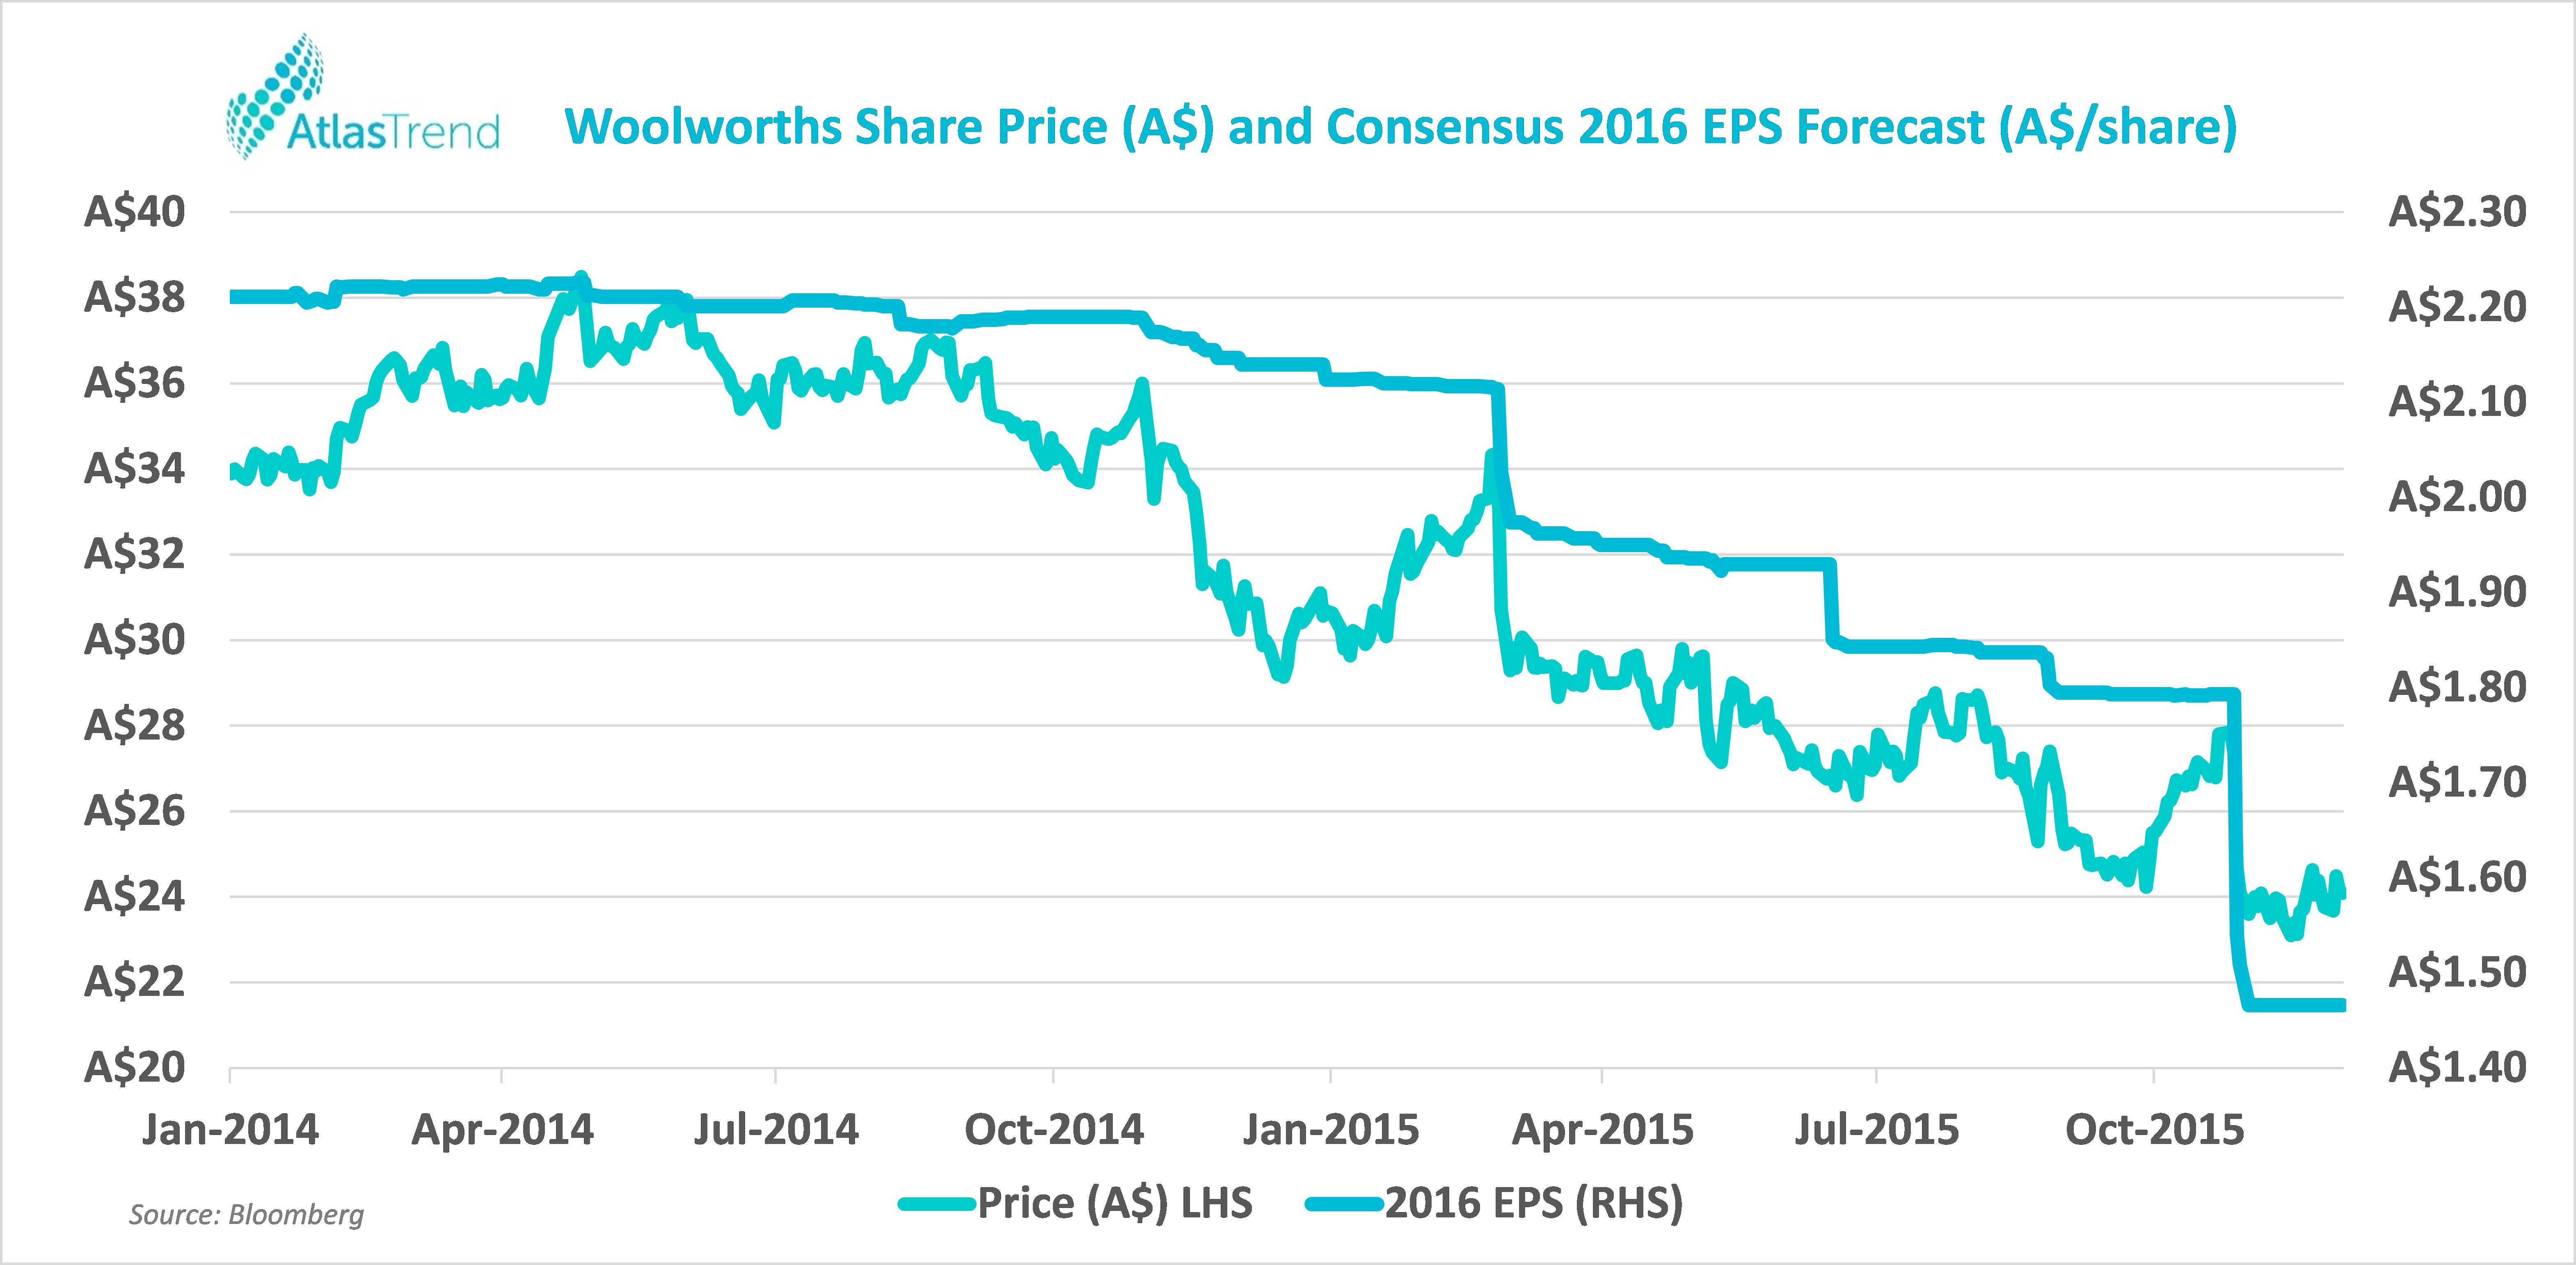 20151202   consensus forecast woolworths